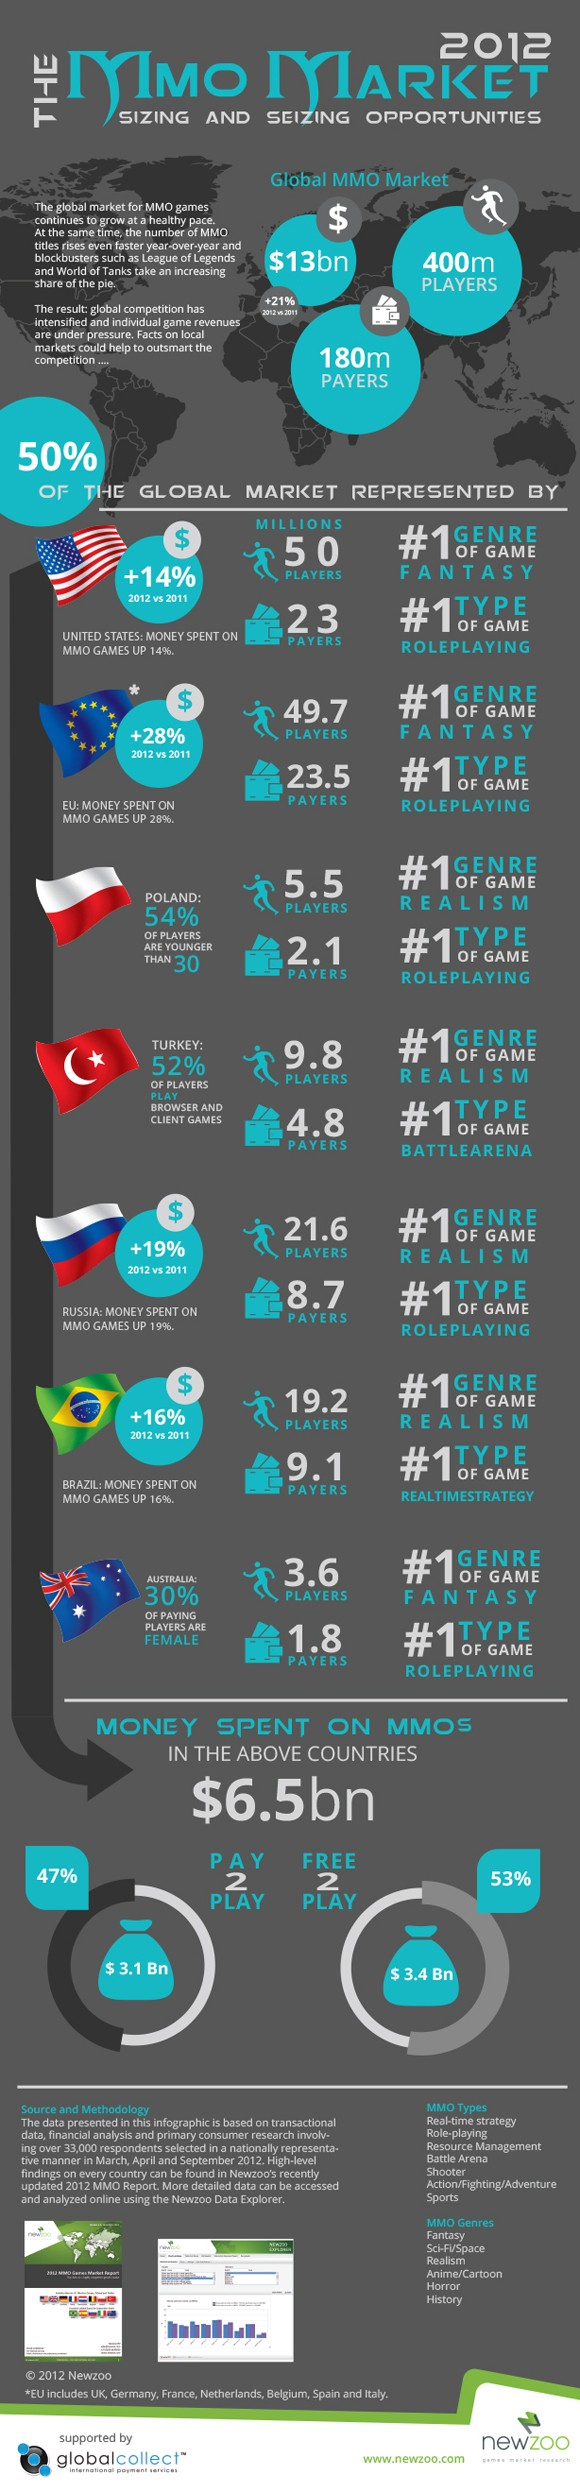 Learn all about the MMO market with this nifty infographic